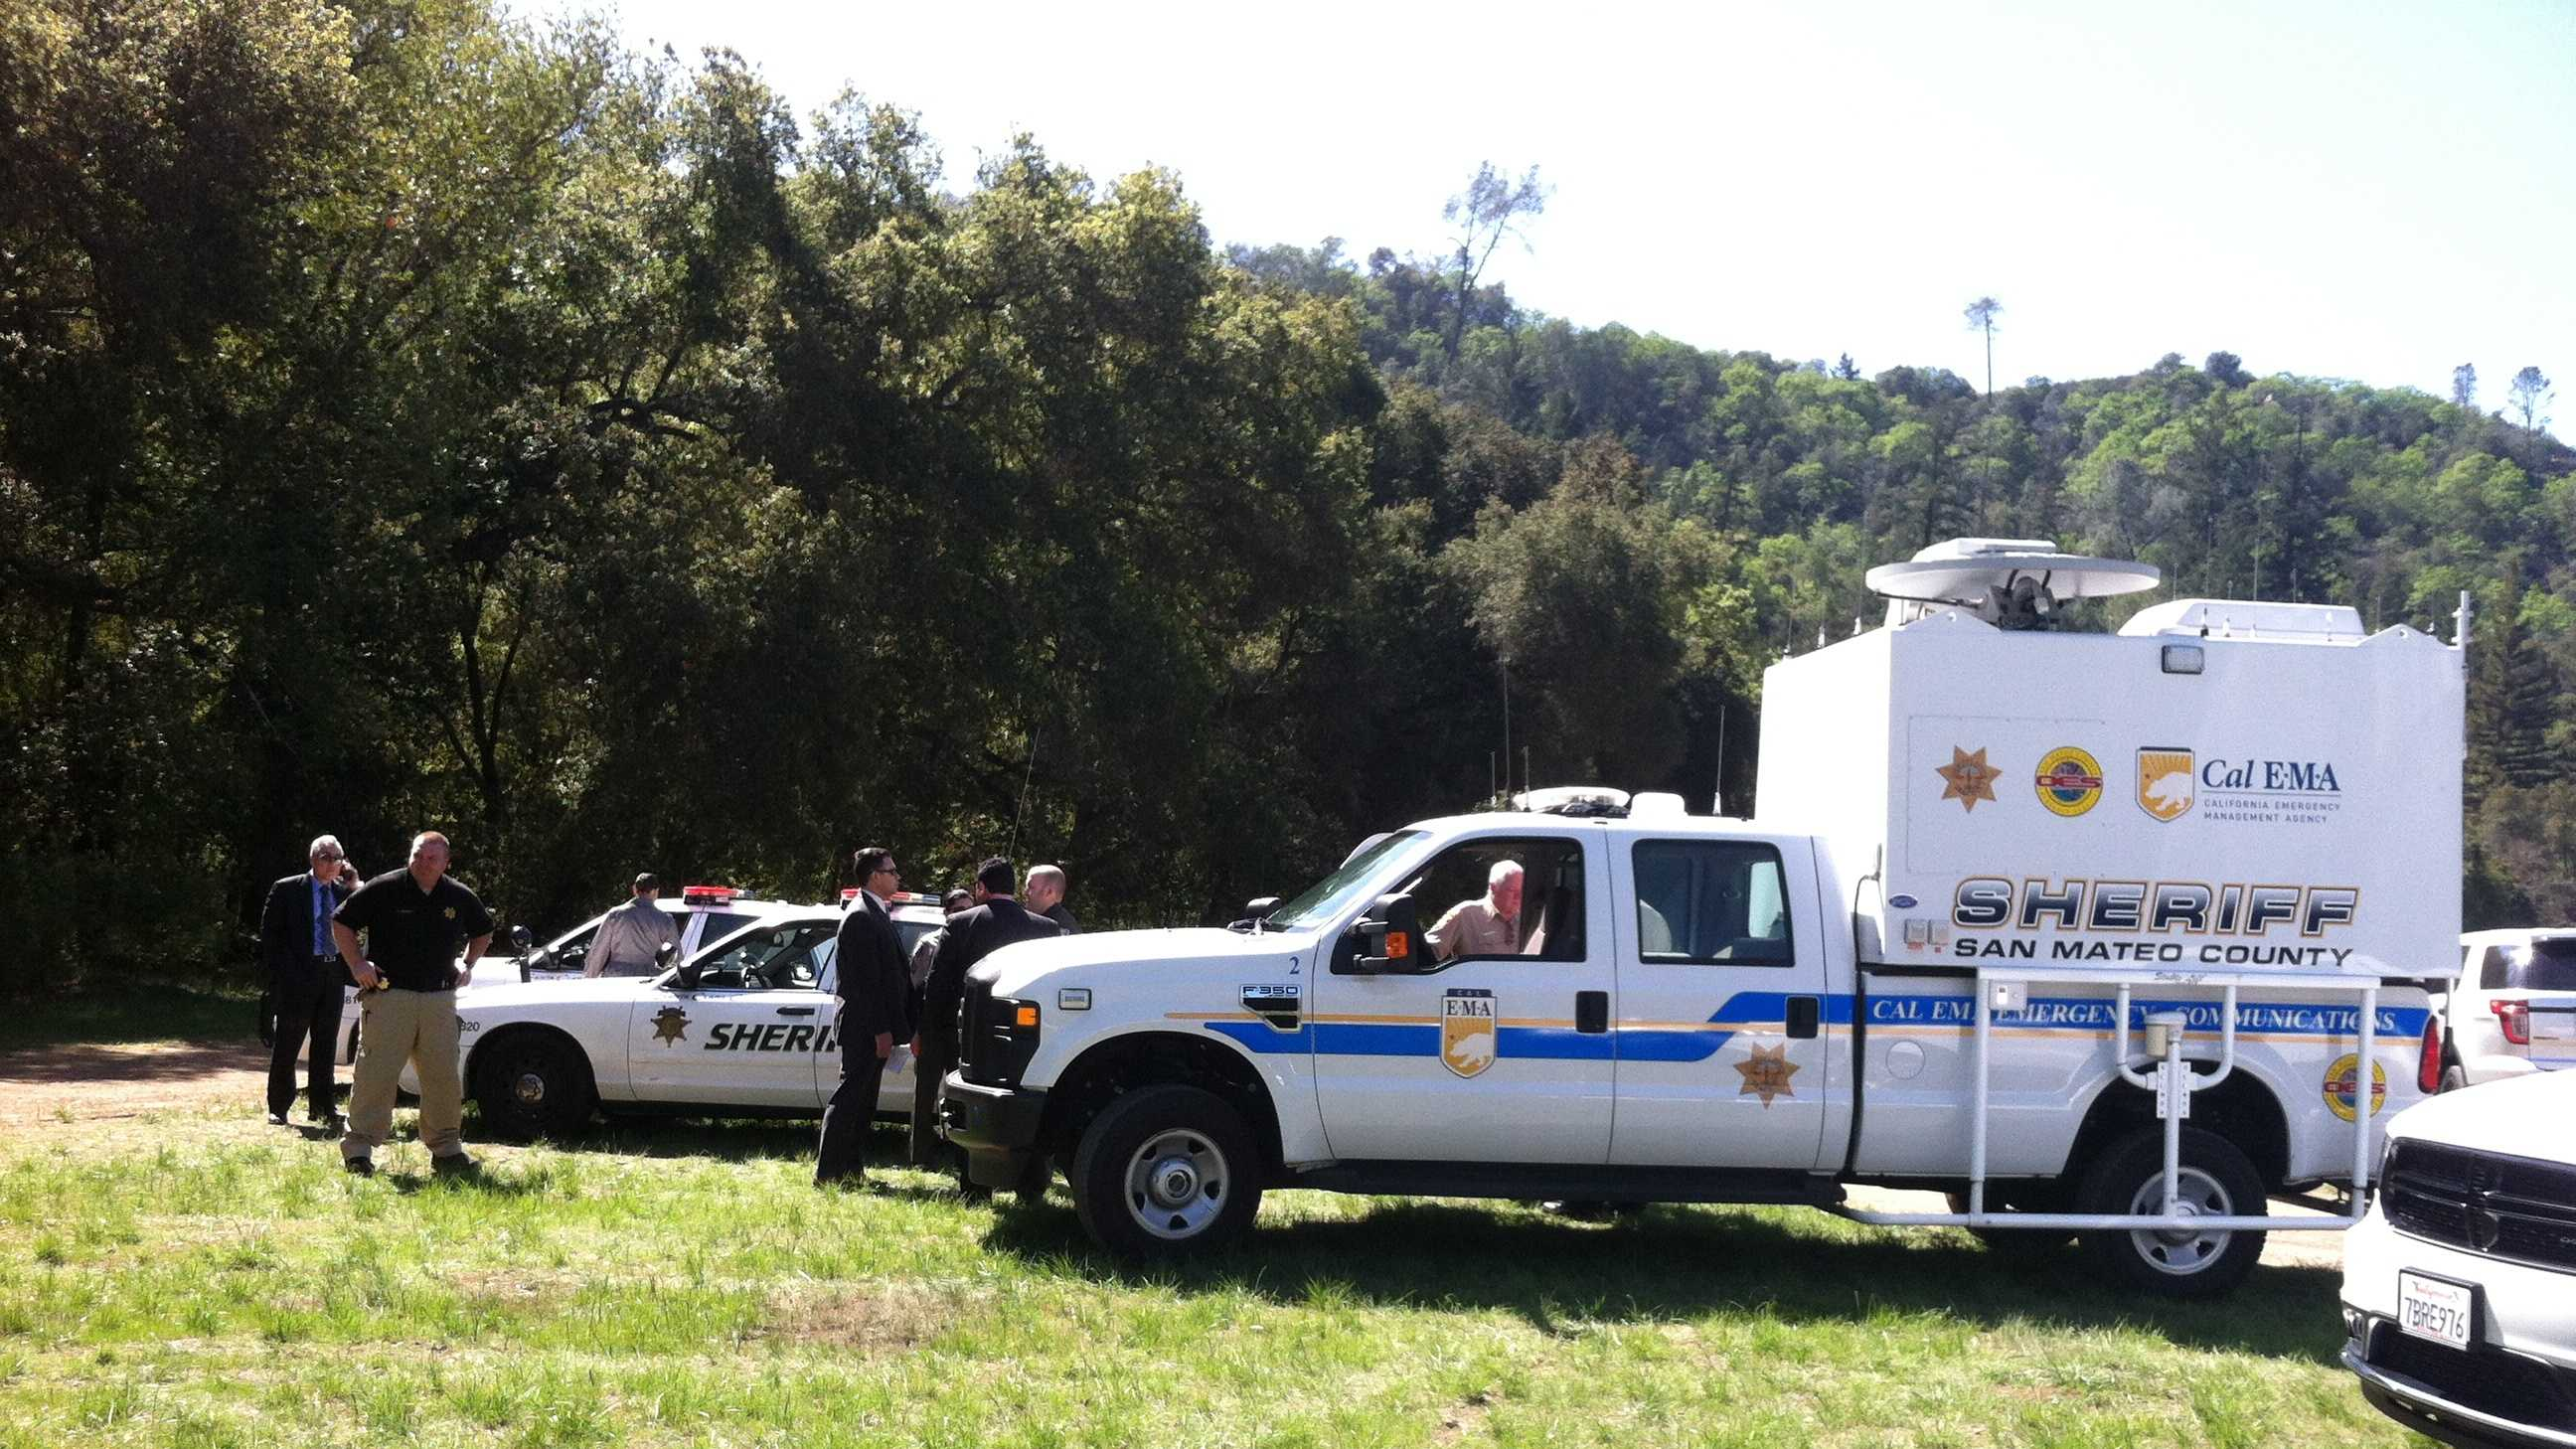 Authorities search forest for man after deputy-involved shooting